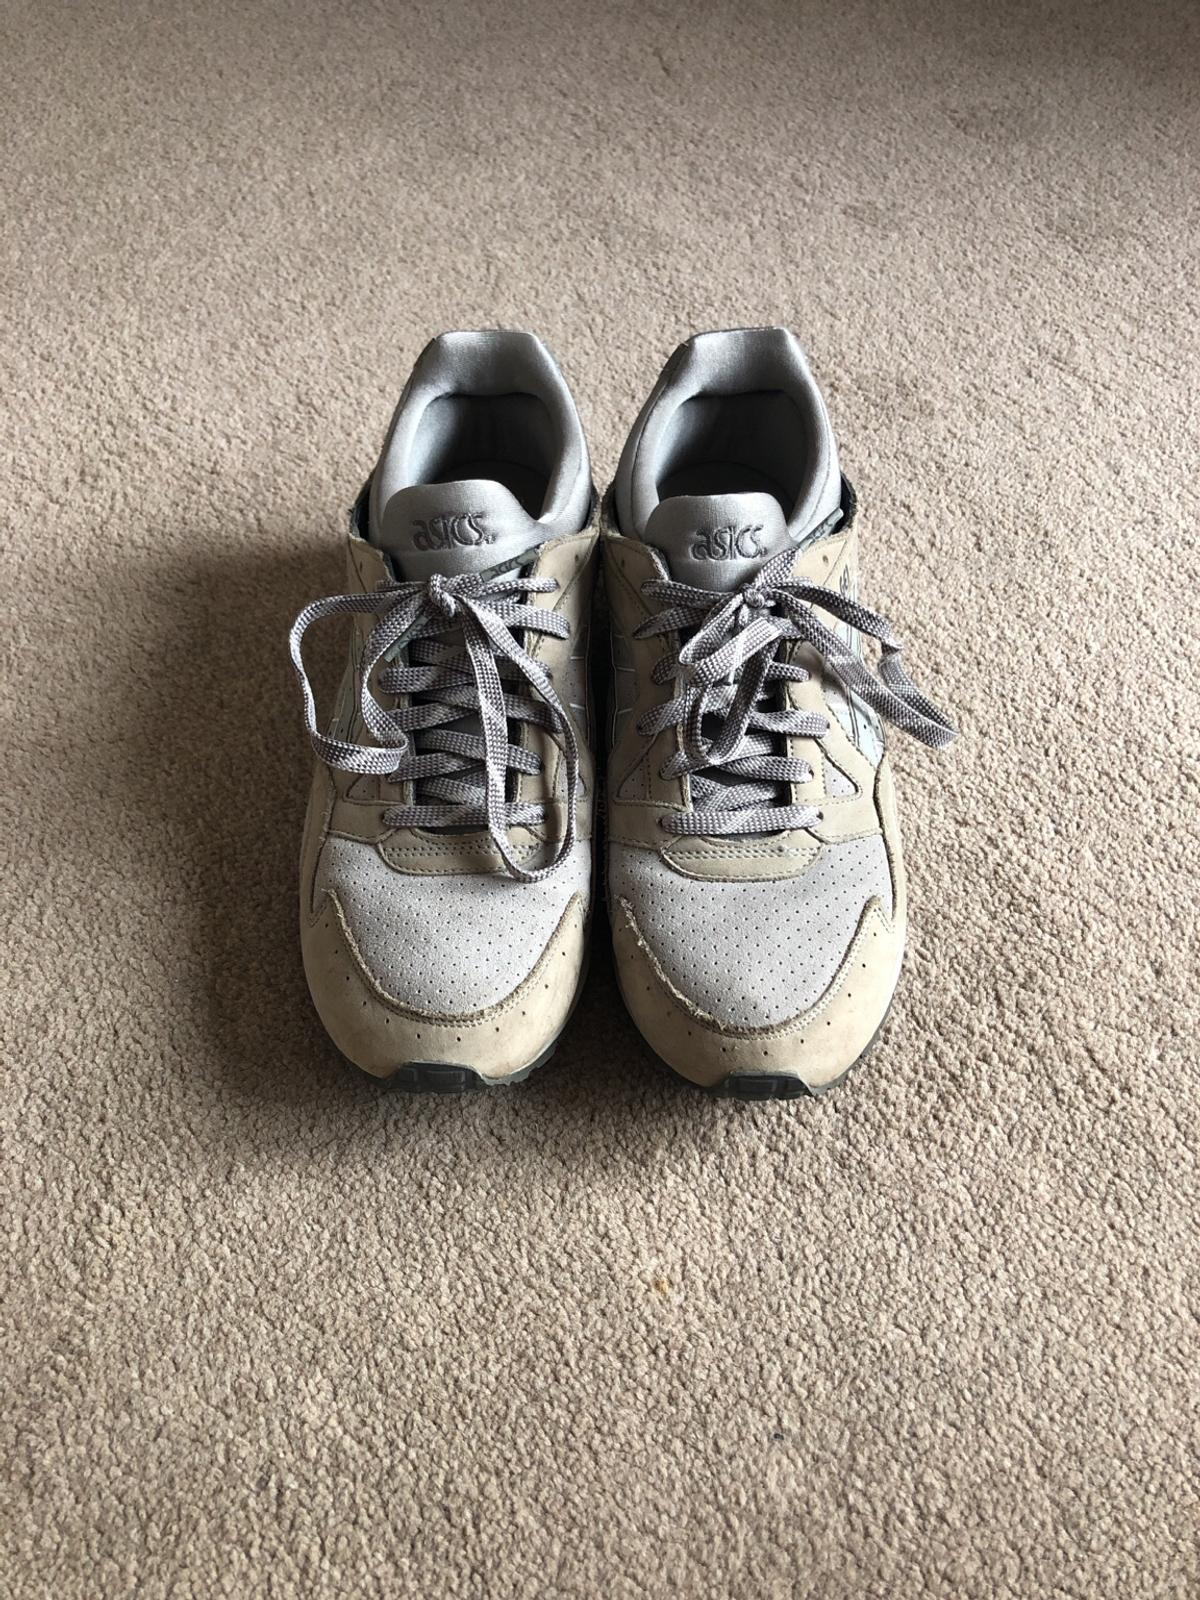 quality design 86c49 edf71 Asics Gel-Lyte V Trainers - Men's Size 10.5 in DY11 Wyre ...